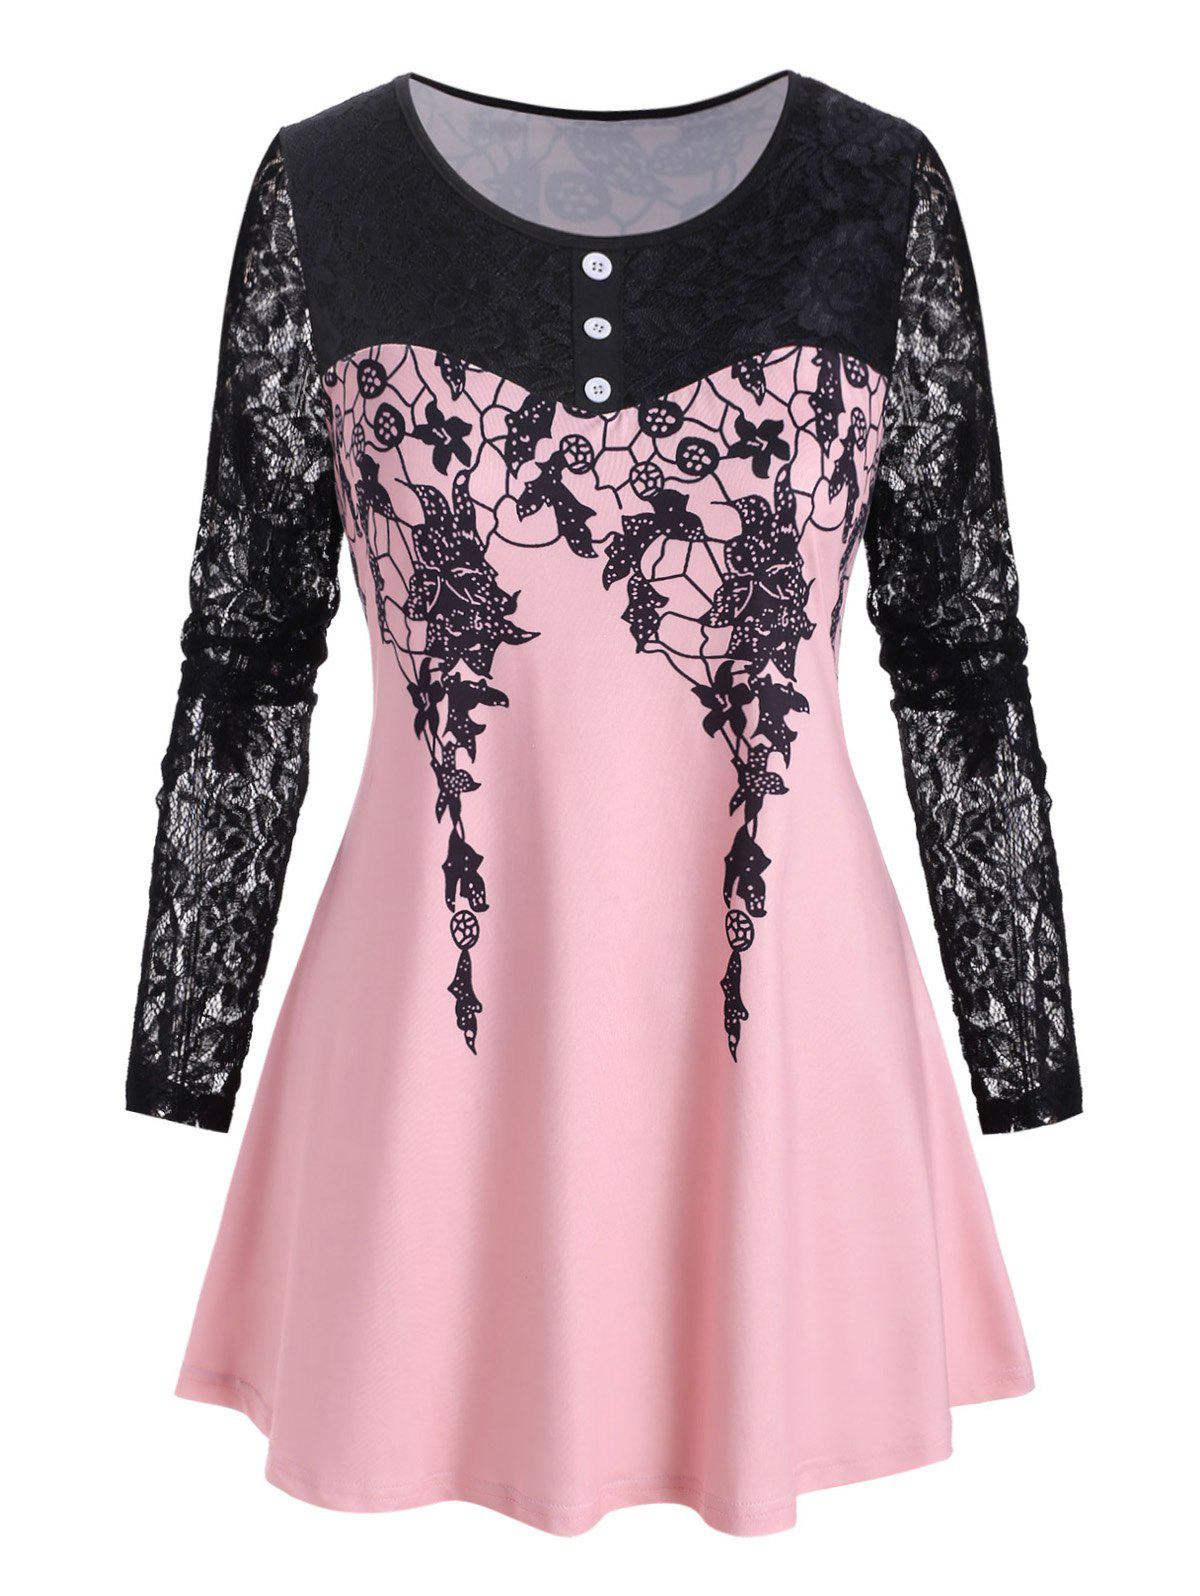 Plus Size Printed Lace Sleeve T Shirt - LIGHT PINK 5X